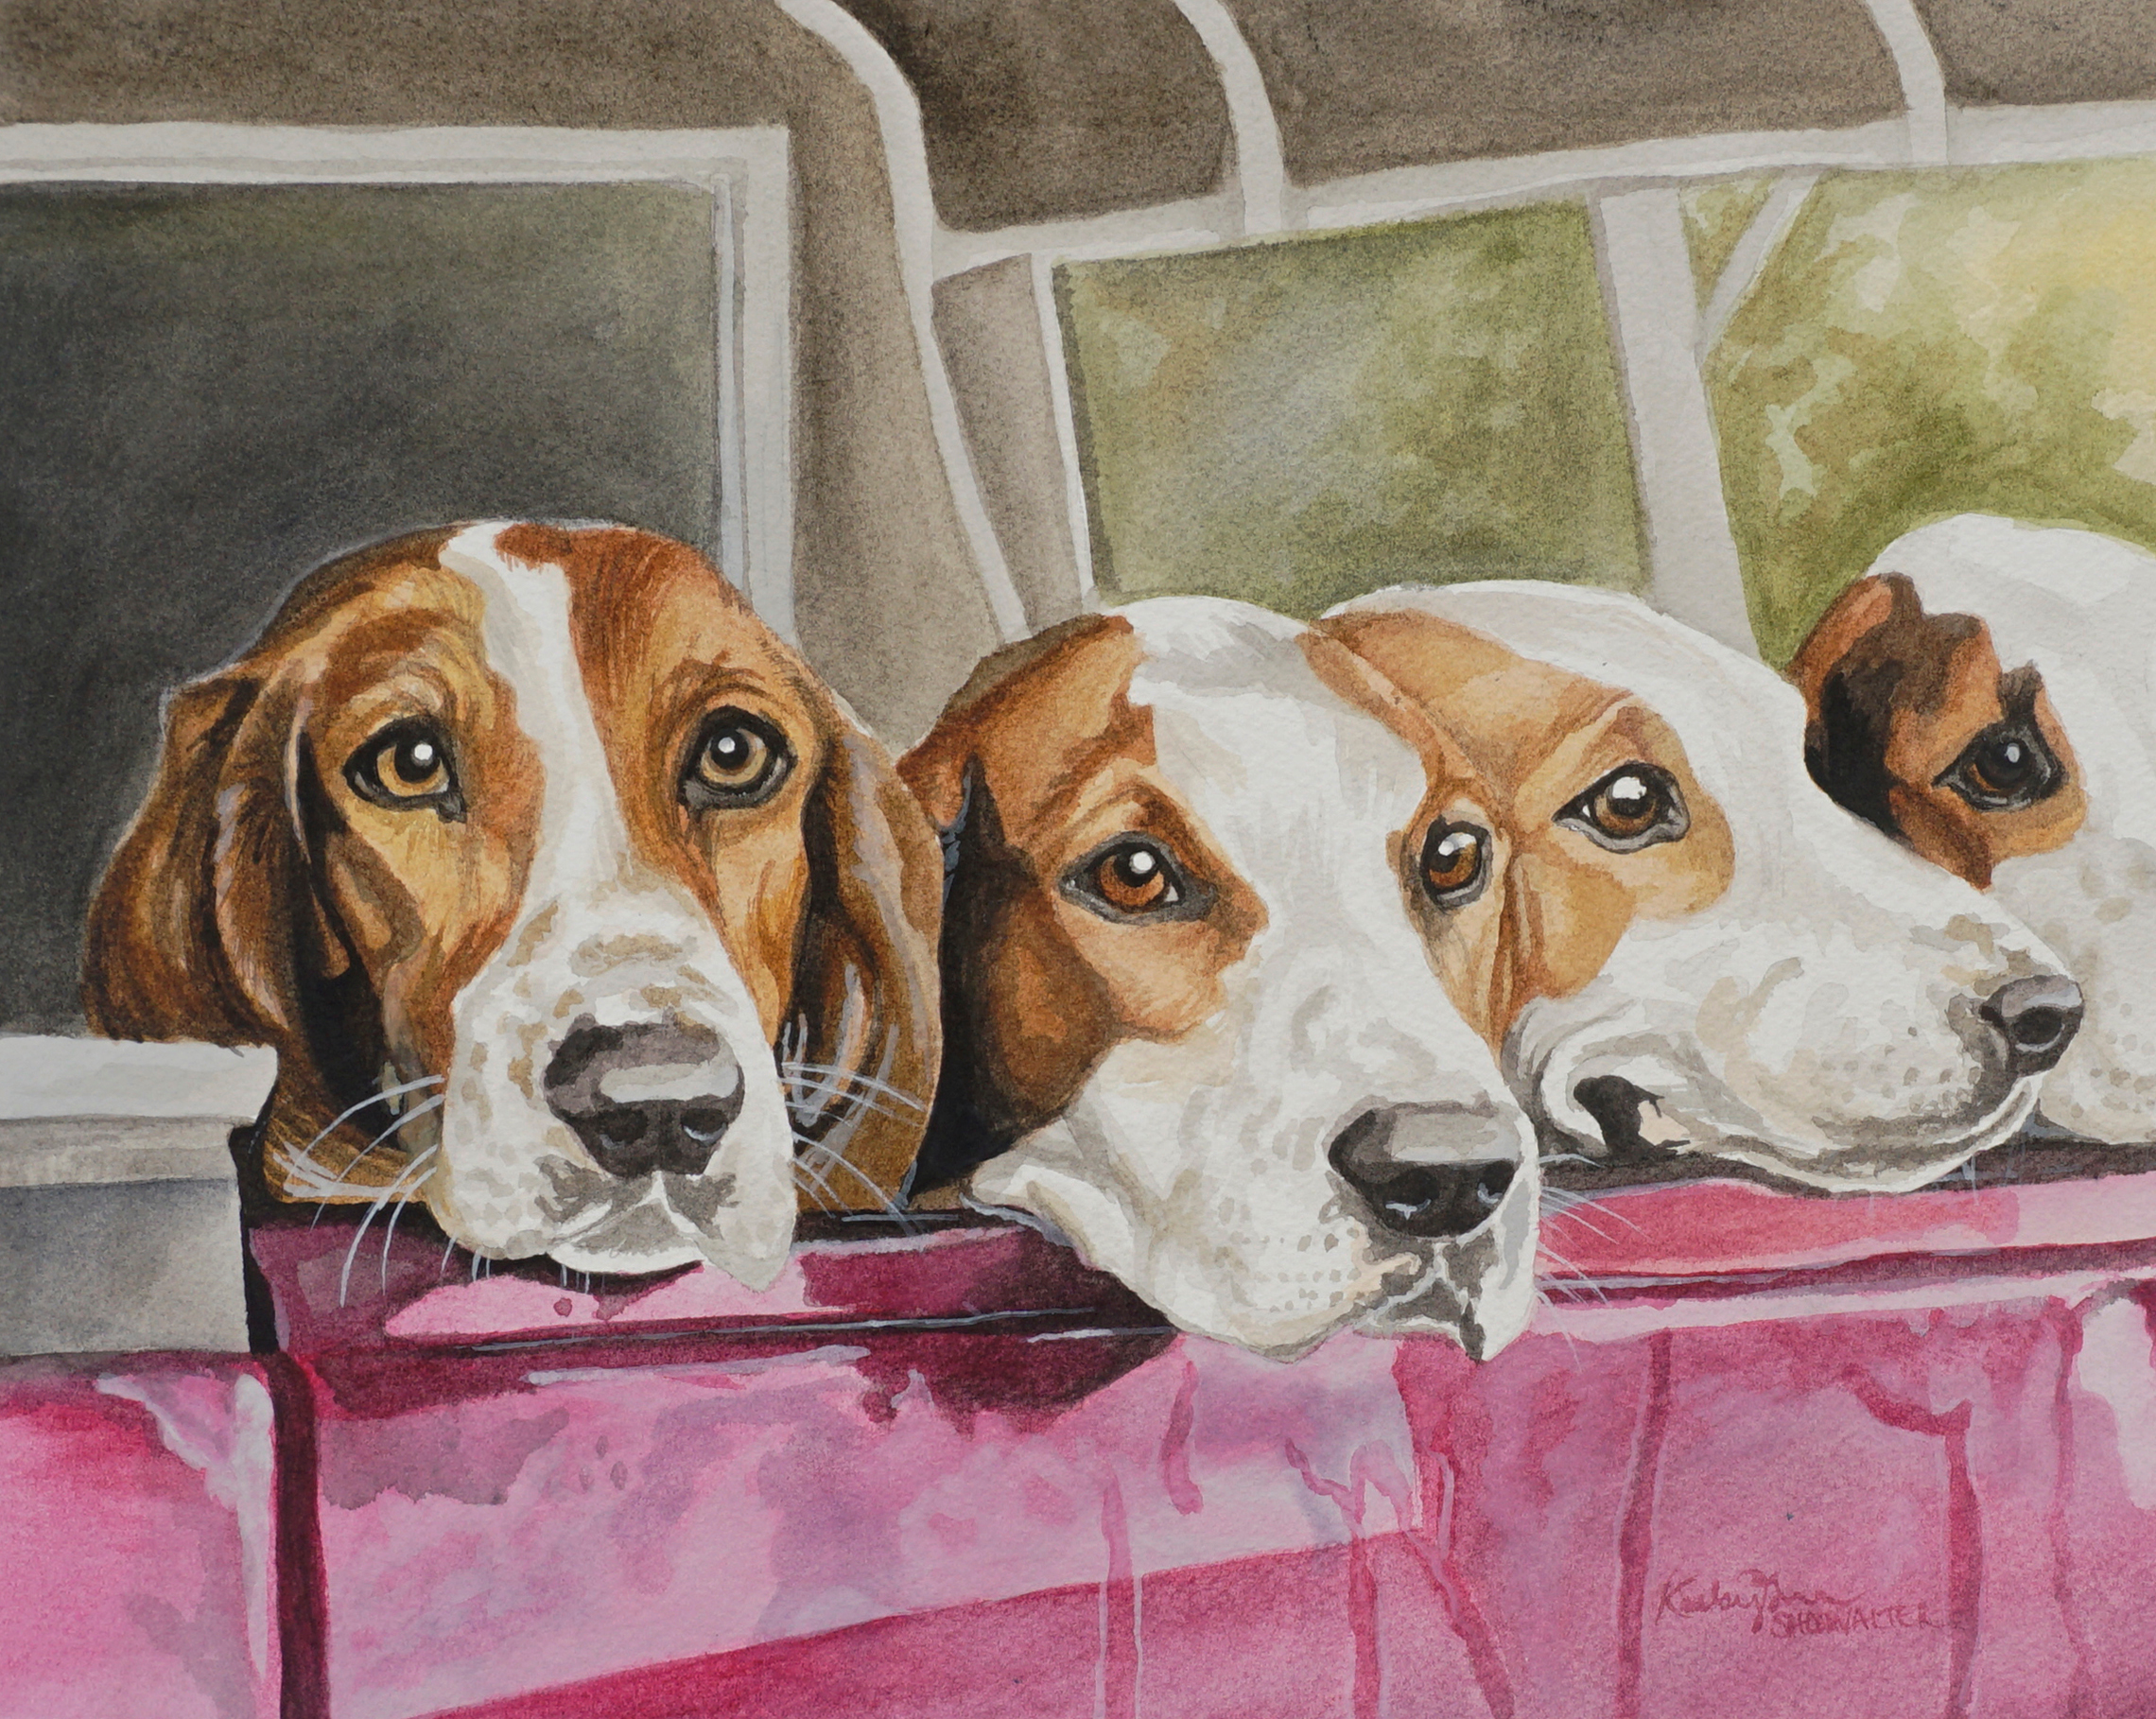 Bed riding hounds yvfpar